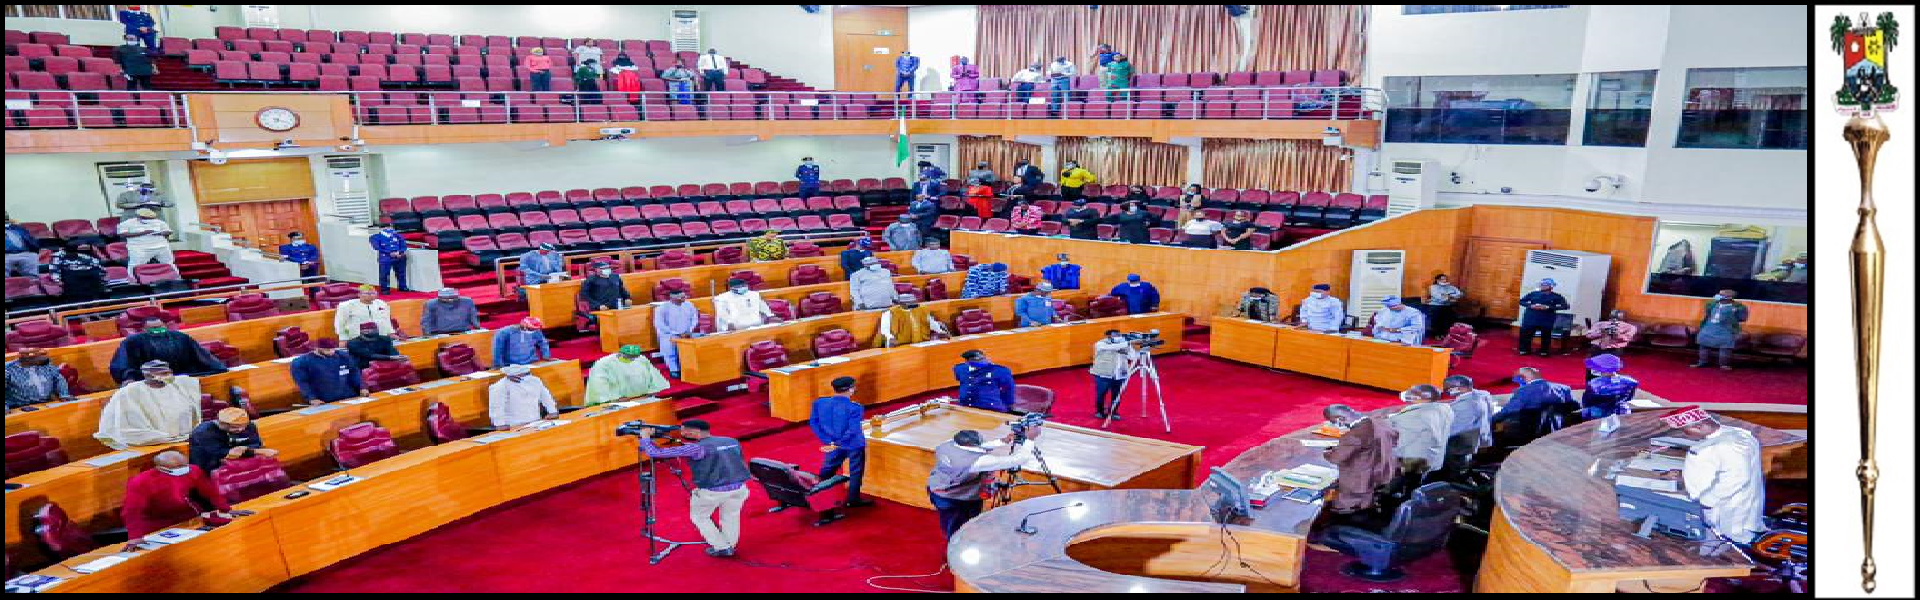 It Is Time To Have State Police – Lagos Assembly Tells Buhari, National Assembly Over EndSARS Violence ·Sets Up Committee To Meet Victims, review situation ·Commiserates with Governor Sanwo-Olu, others